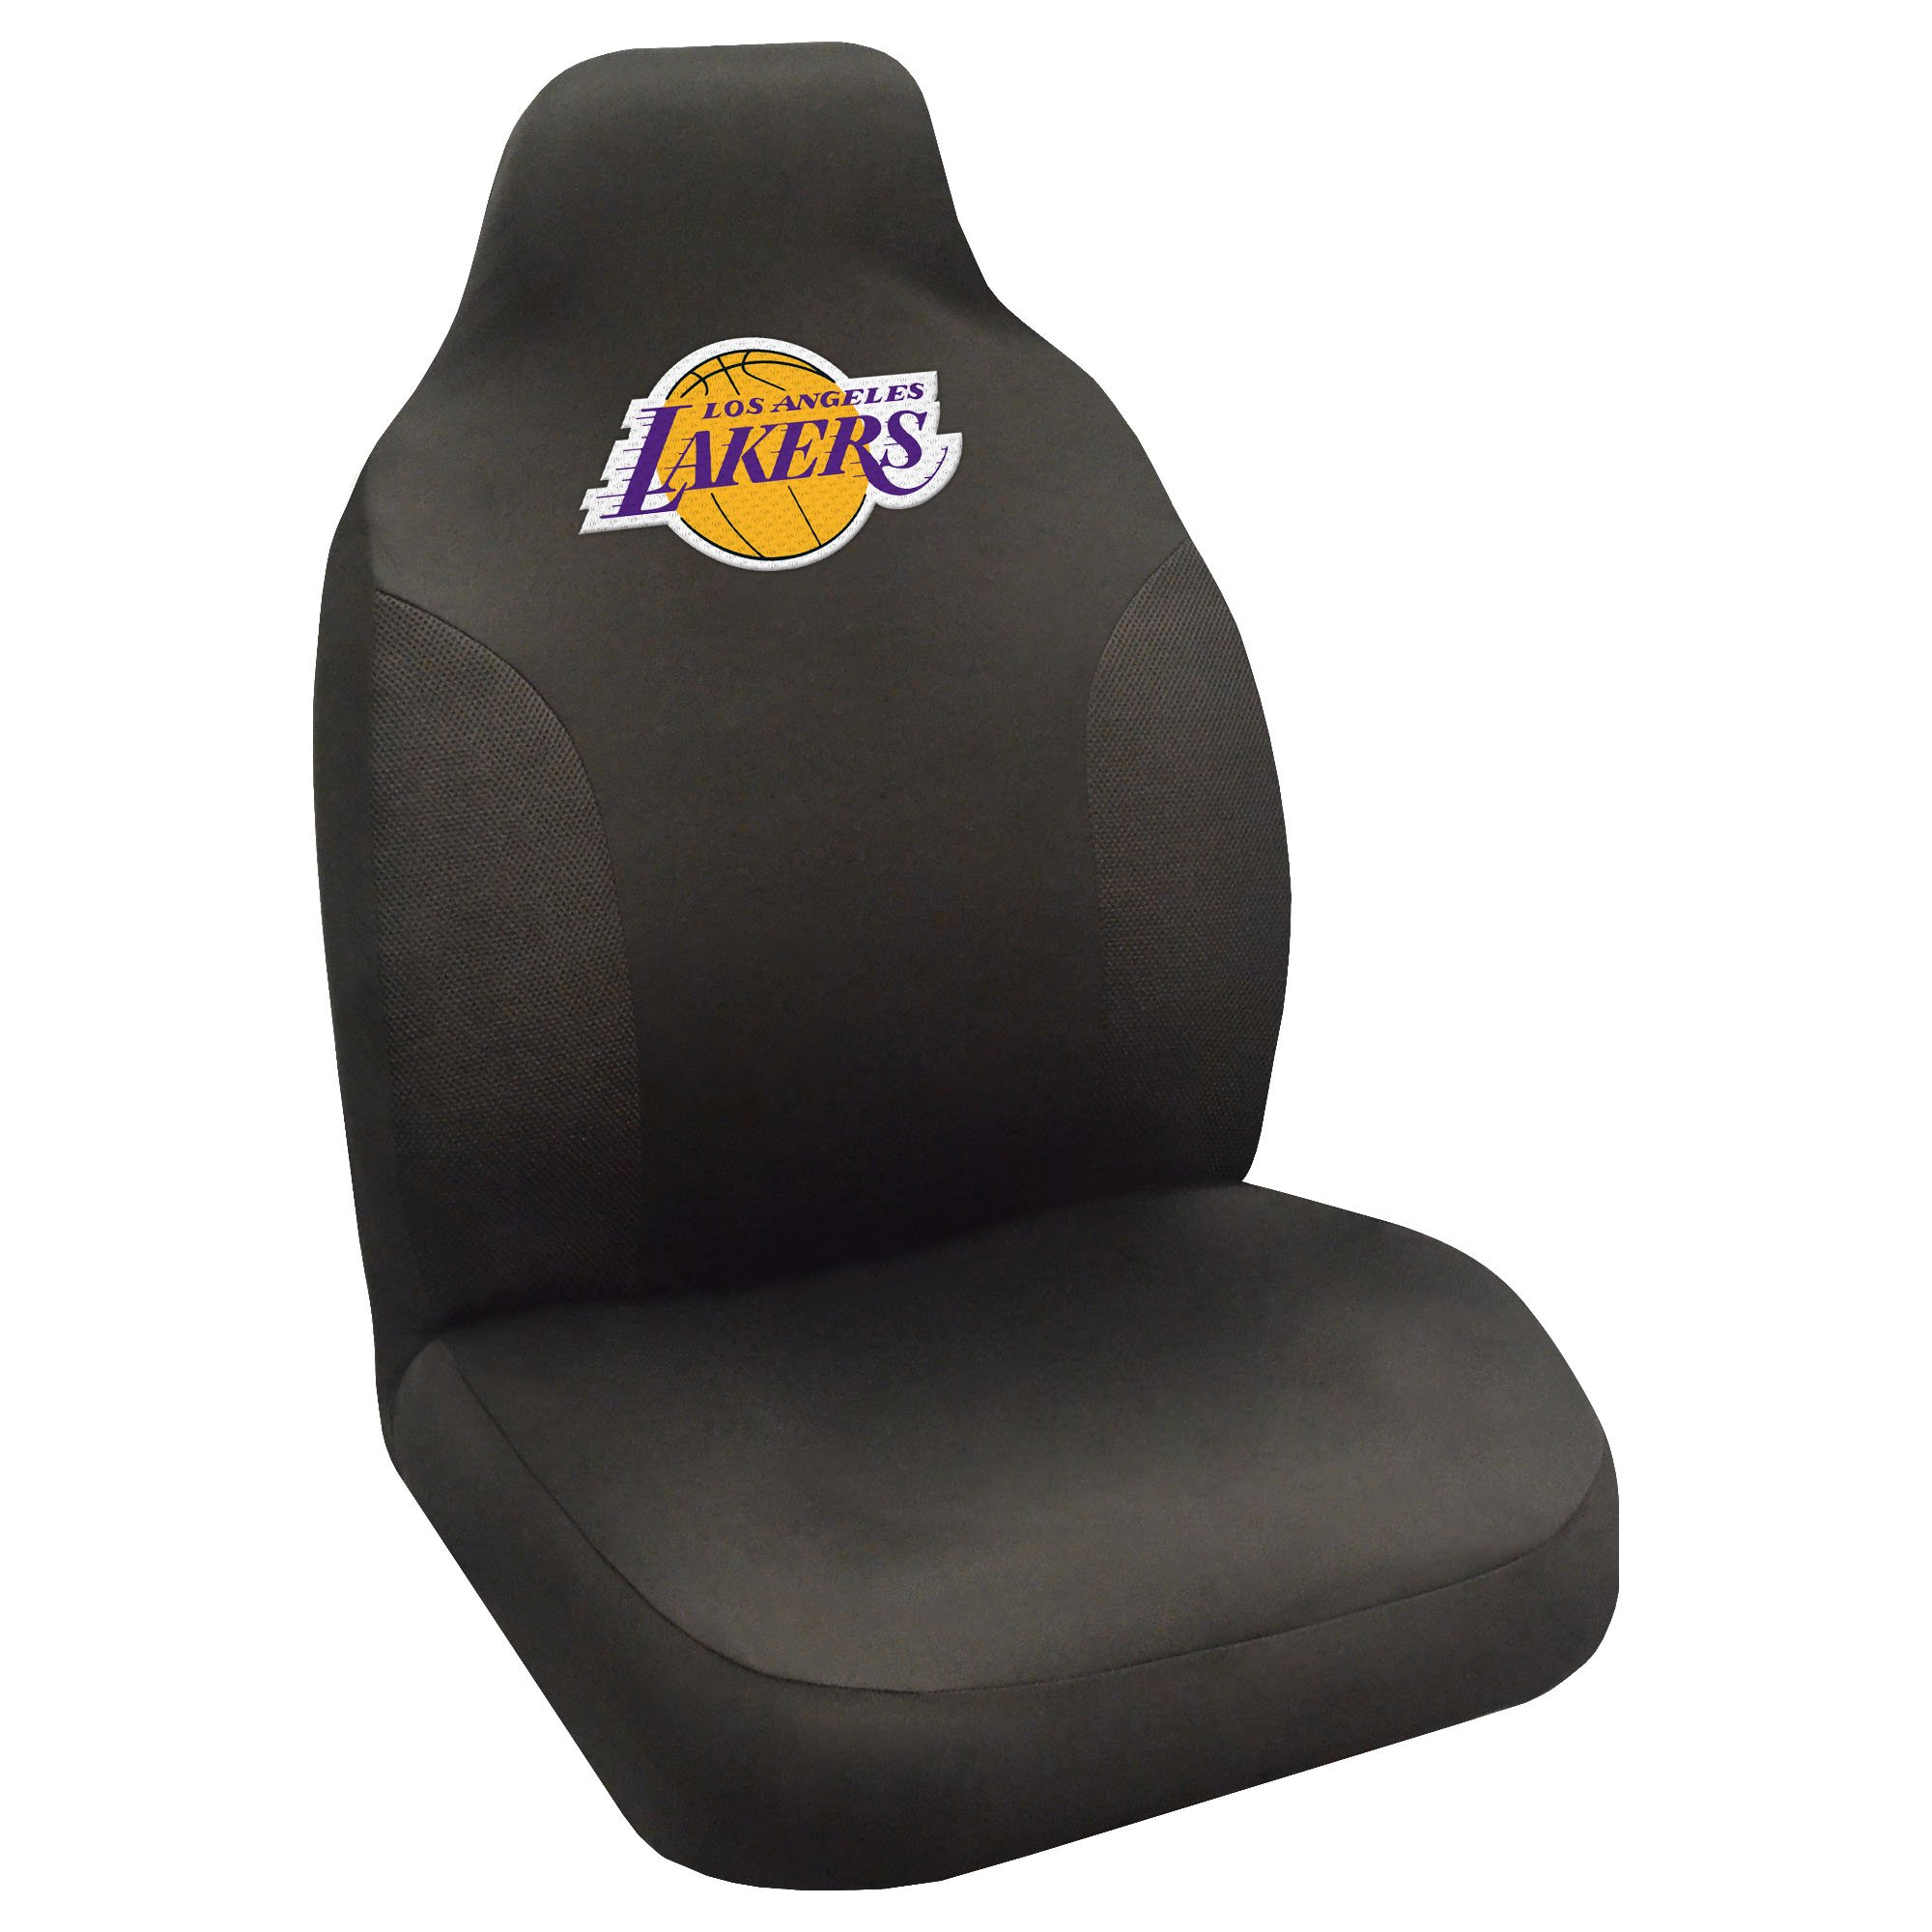 Fanmats NBA Los Angeles Lakers Polyester Seat Cover